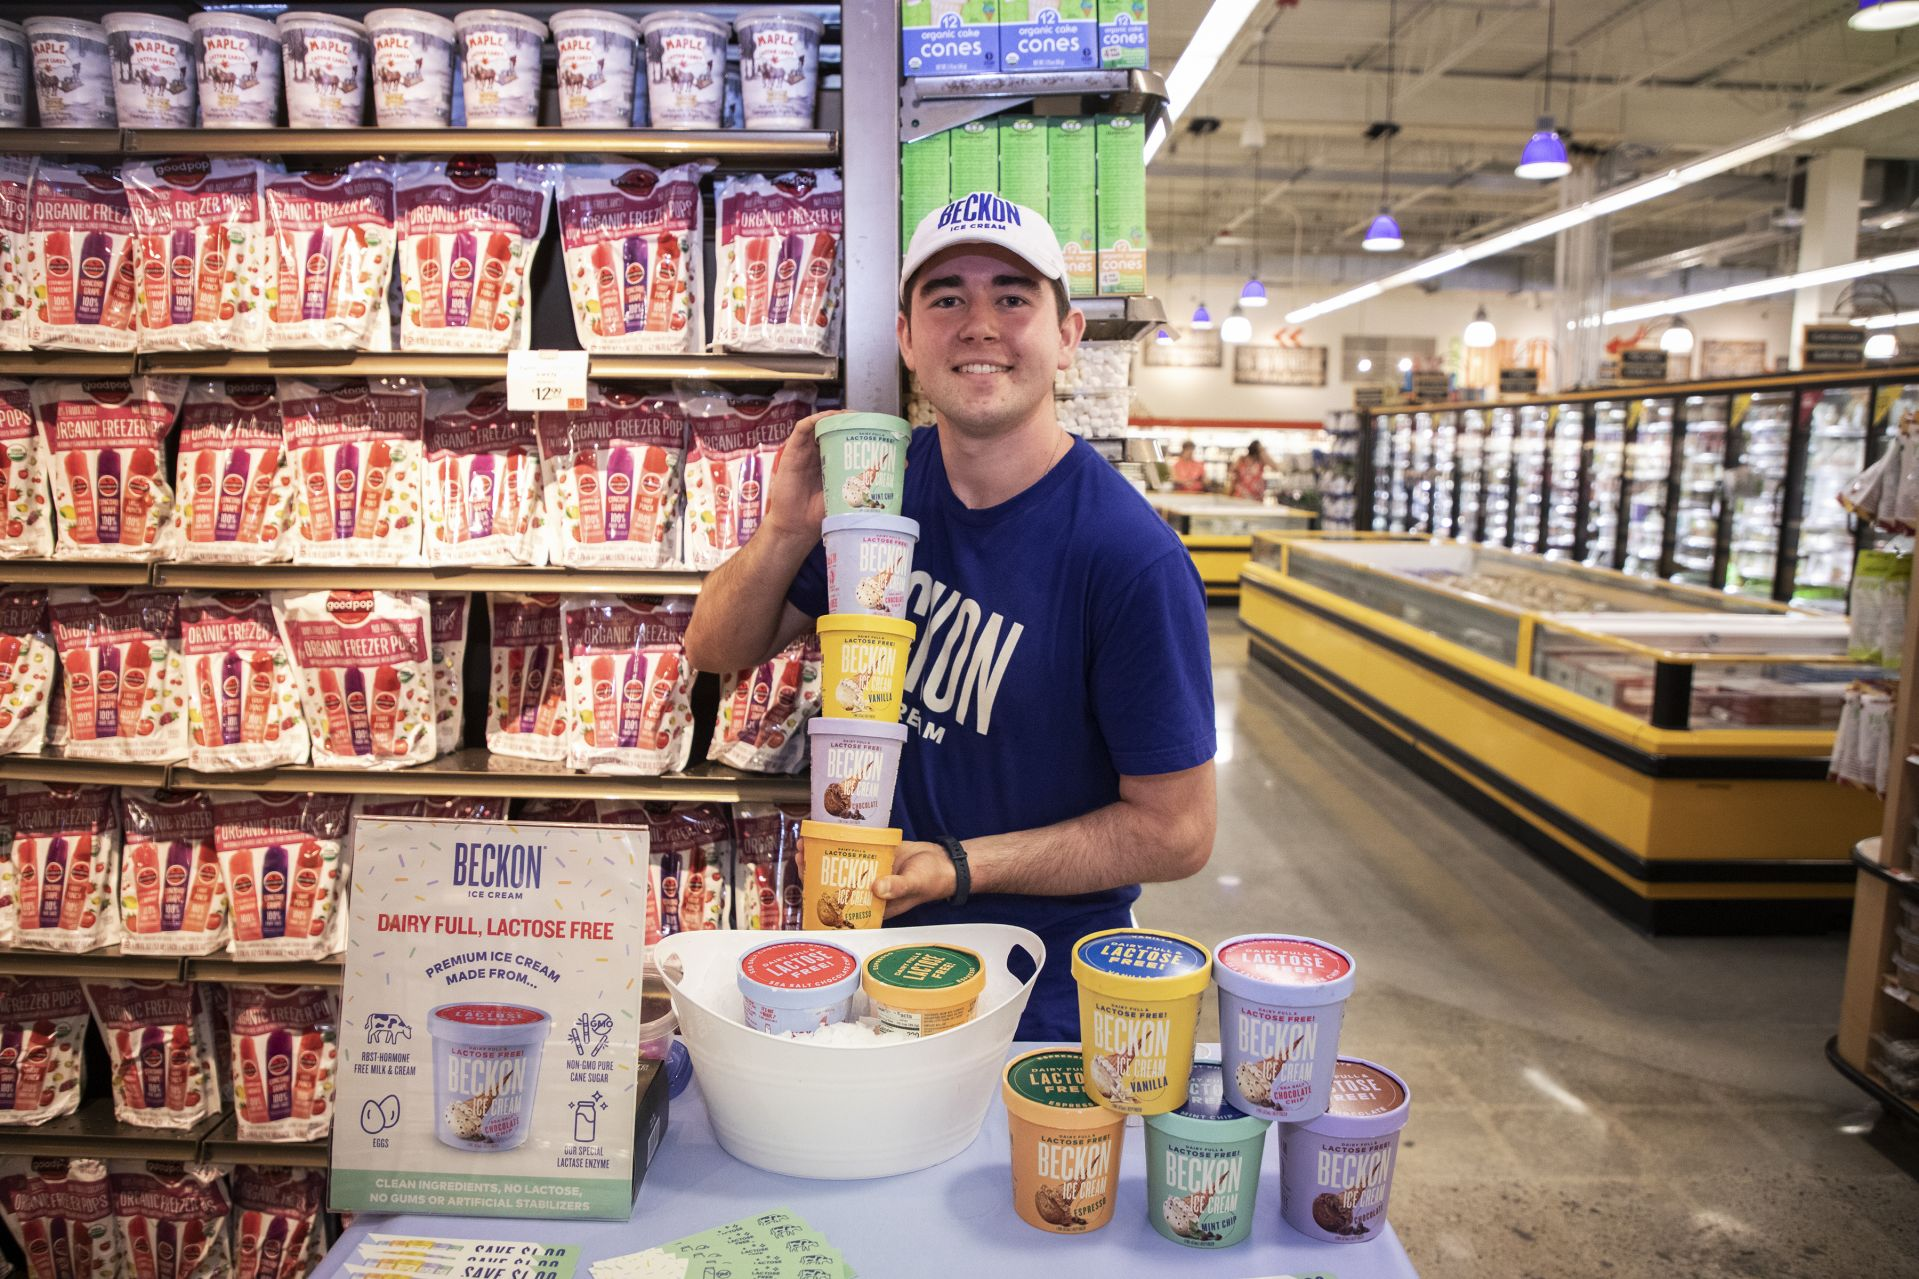 James MacDonald '20 of Quincy, Mass., economics major, mathematics minor, displays some of the Beckon Ice Cream flavor options as he prepares a demo at the Whole Foods South Weymouth location on July 22, 2019.